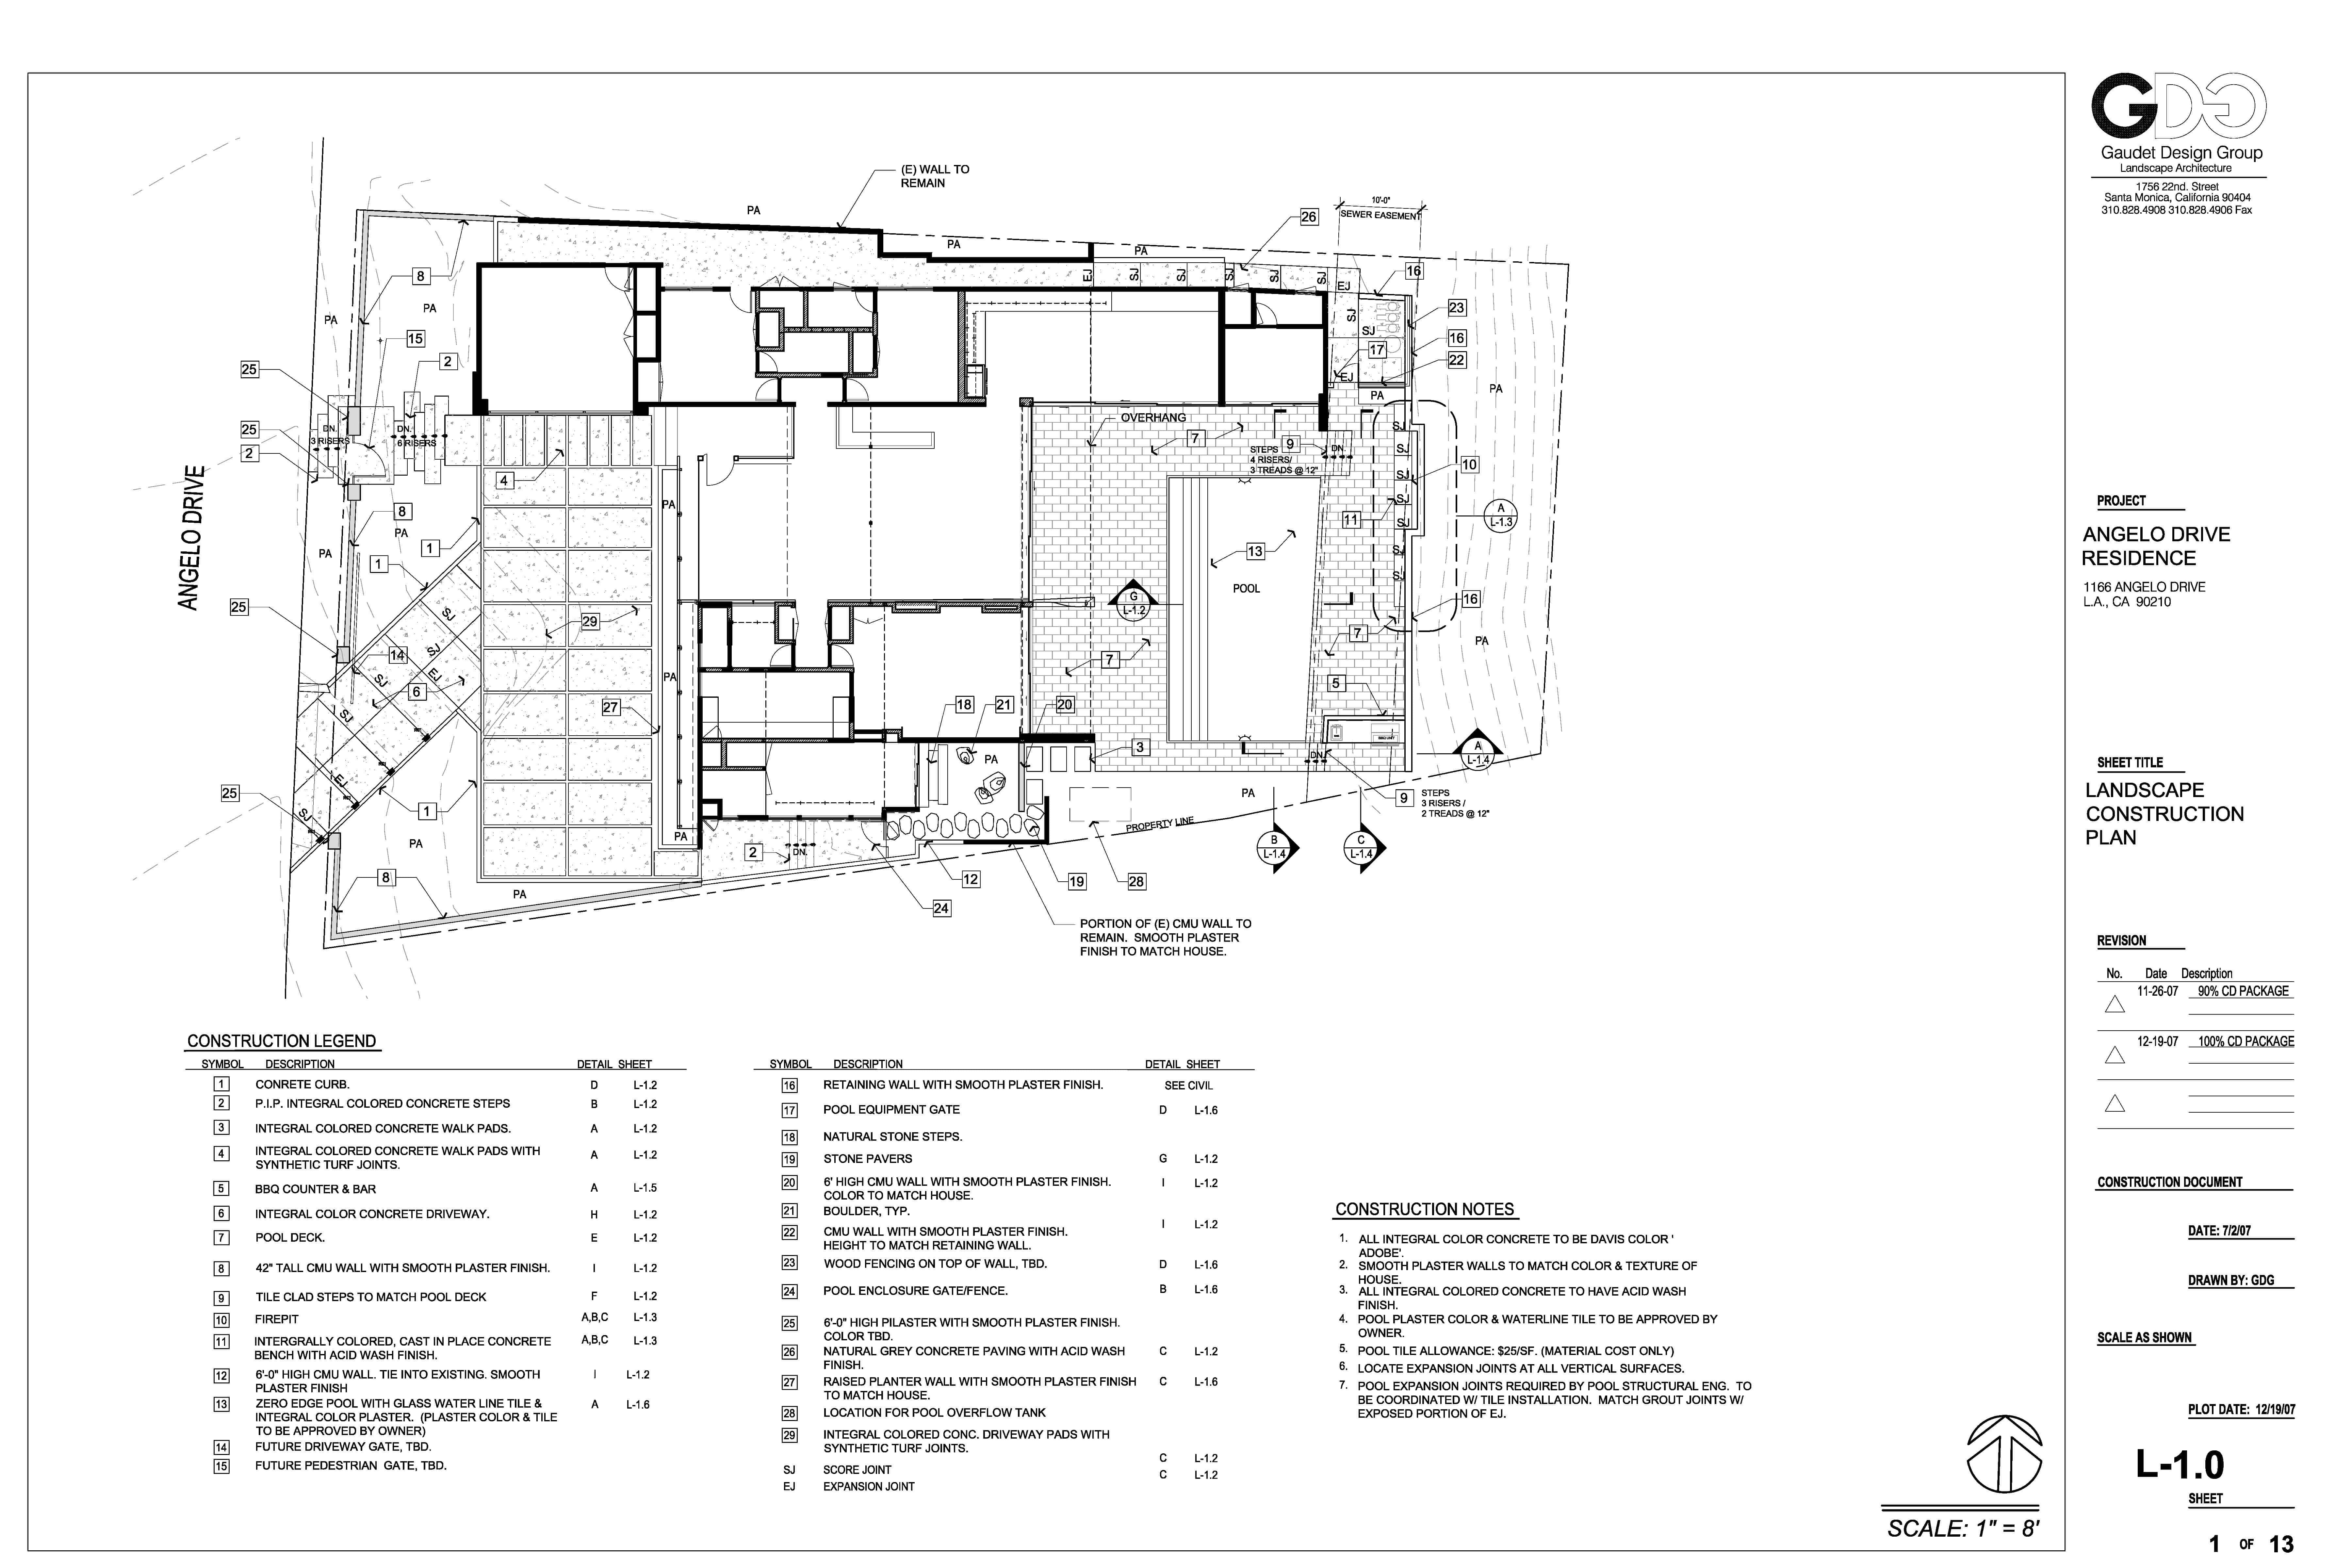 0635_Angelo Residence_L-1.0_Construction Plan